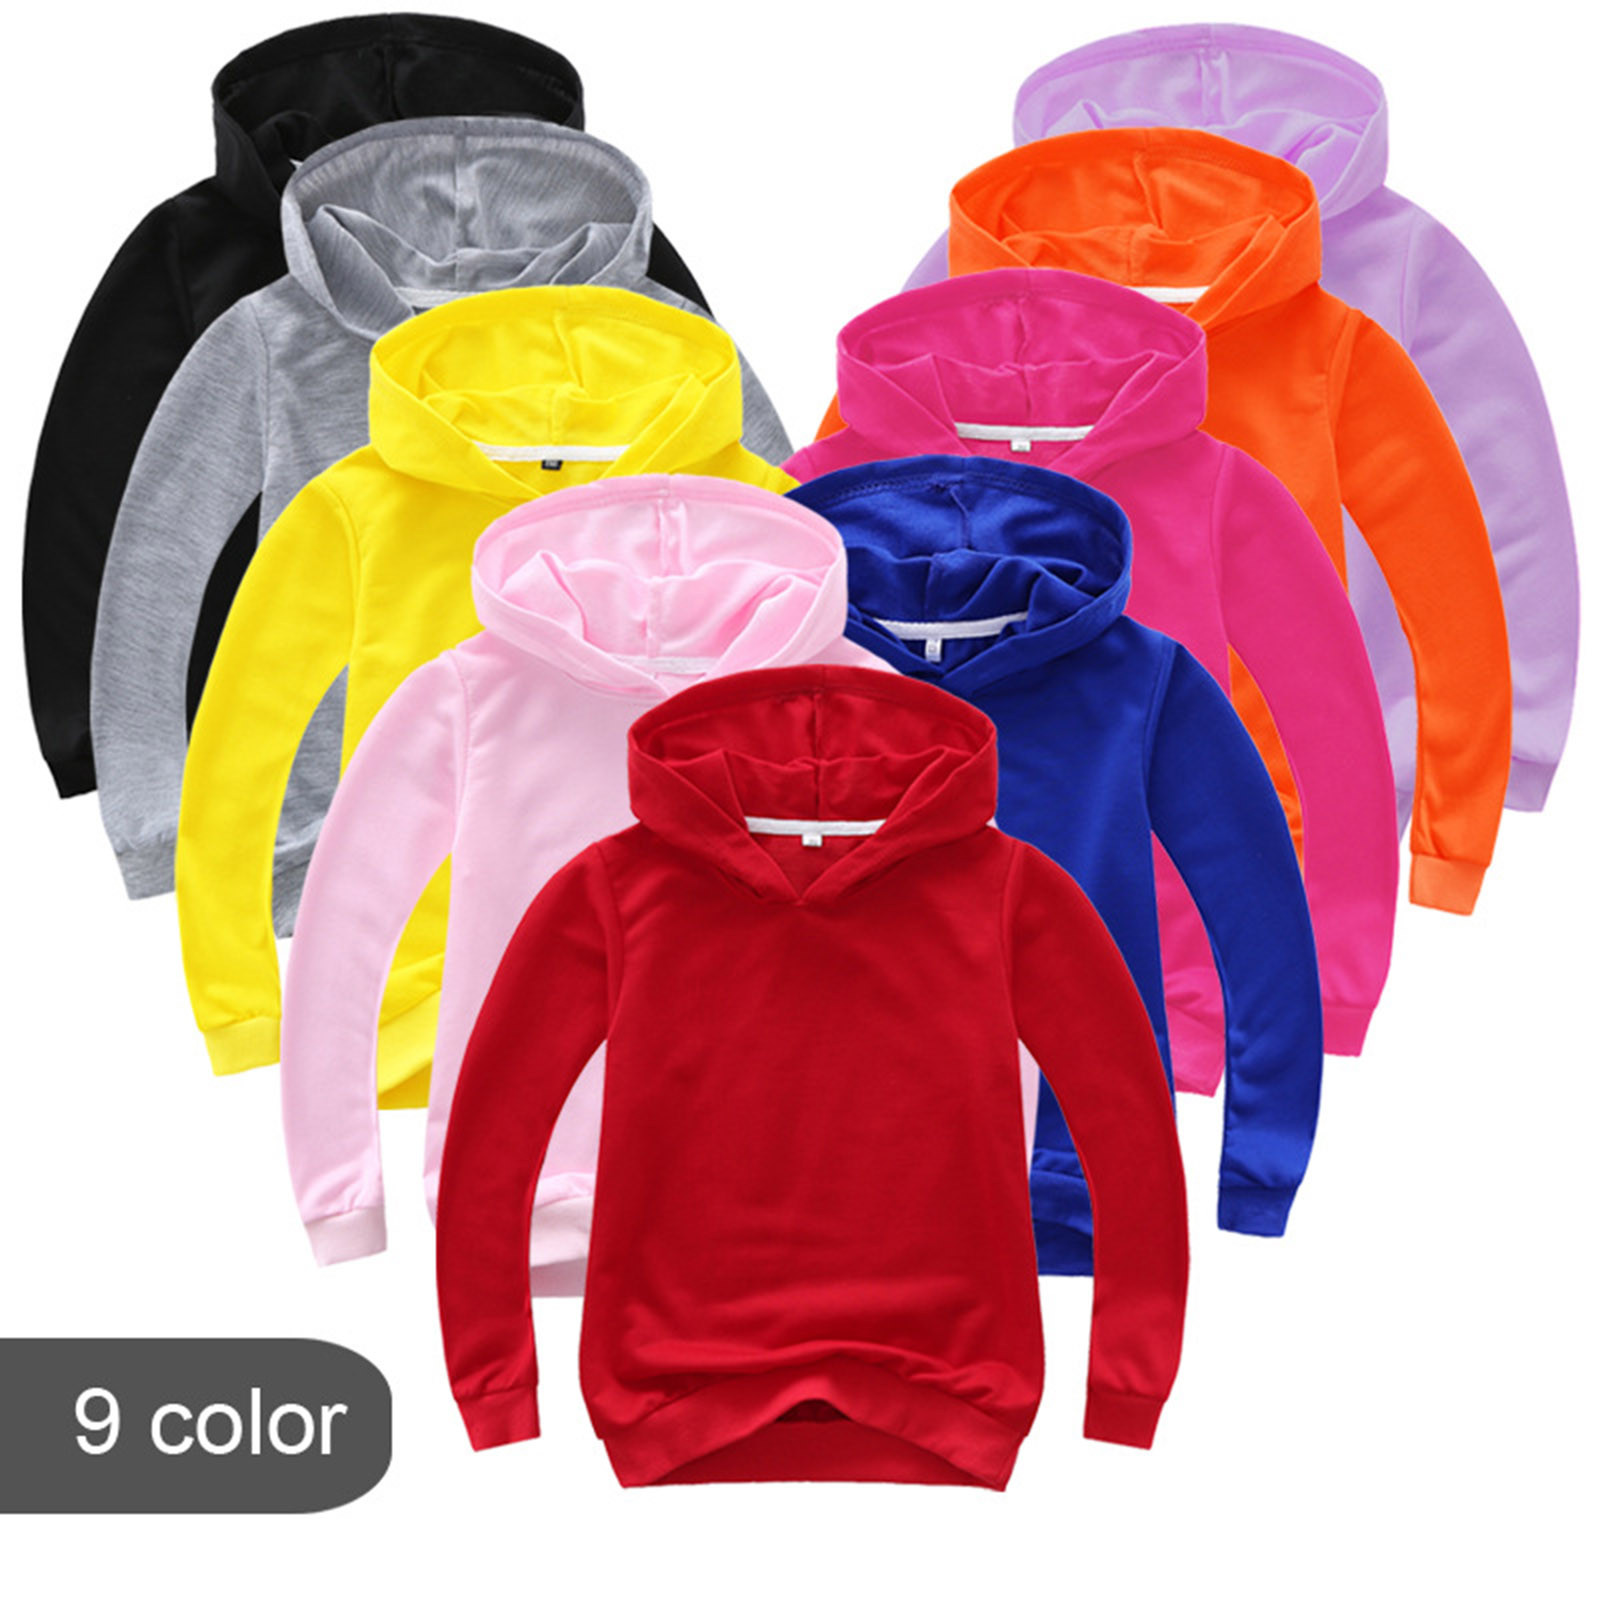 Baby Pullover,Kids Boys Girls Letter Multicolor Hoodies Sweatshirts Pullover Tshirt Tops Clothes 2-10 Years